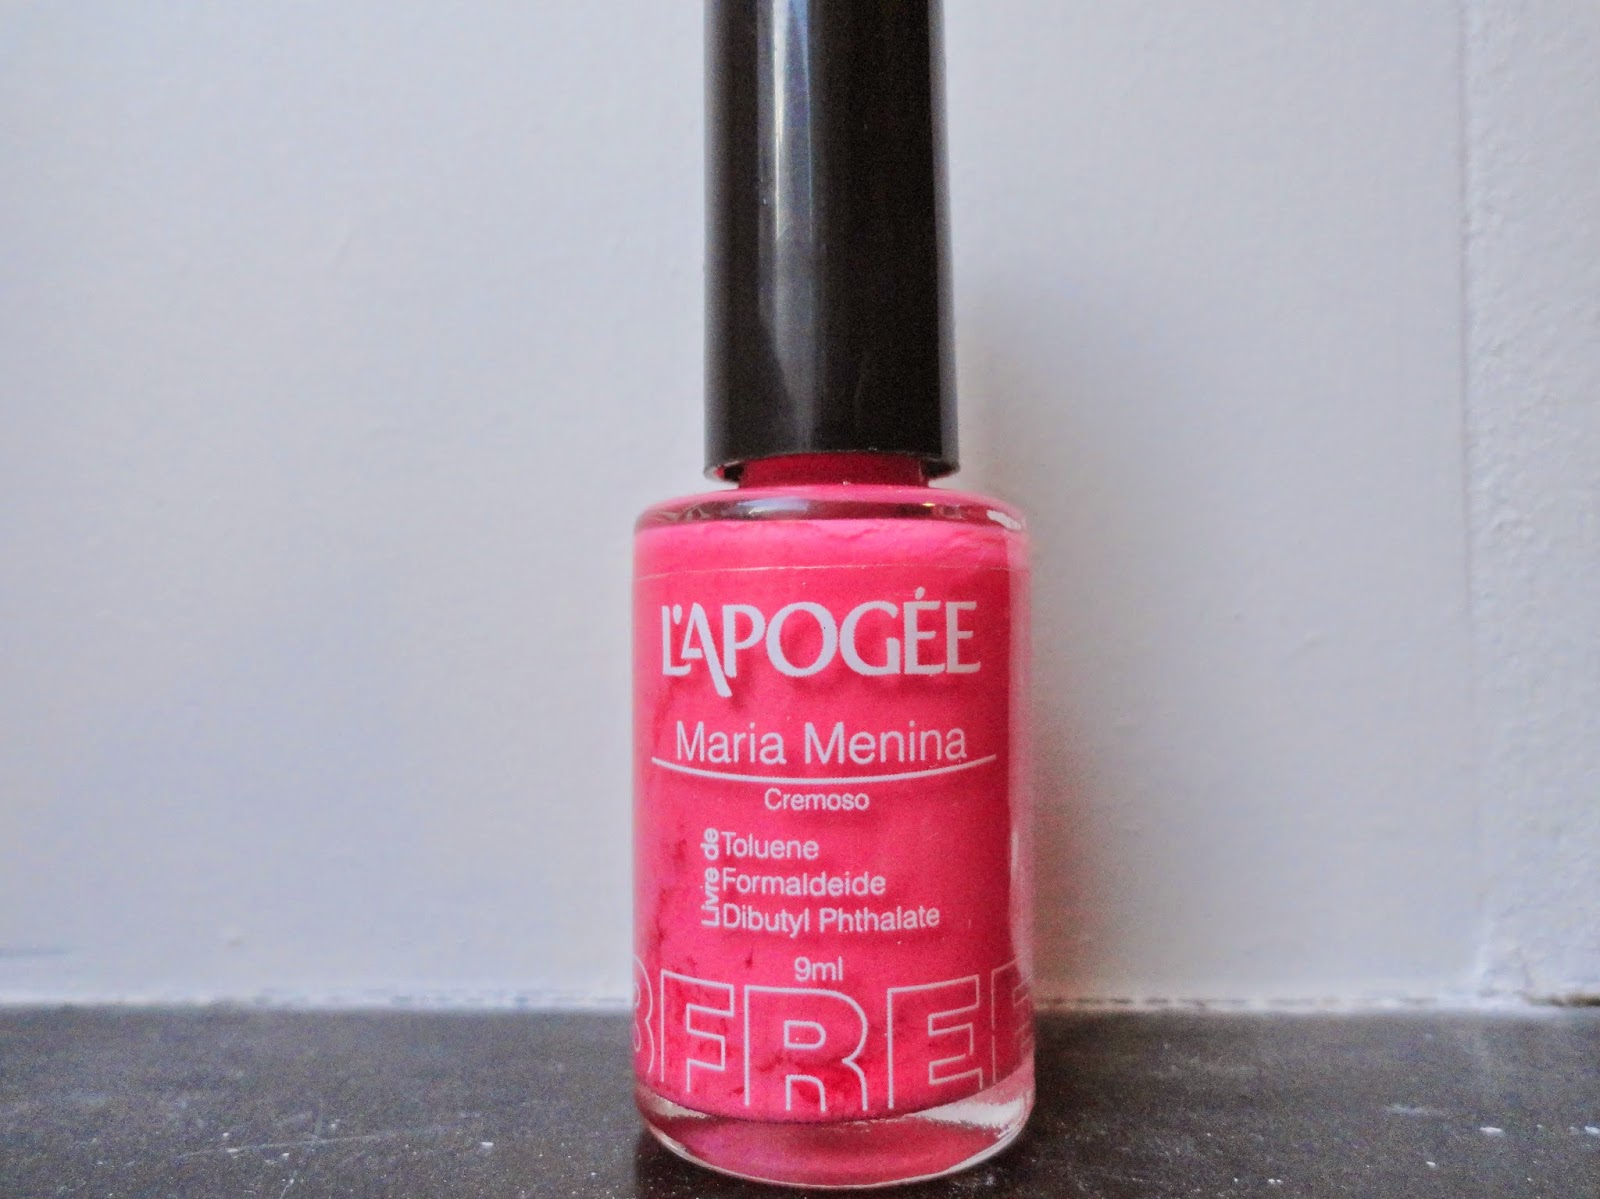 Clothes & Dreams: NOTD: Filled neon triangle: neon pink nail polish L'Apogee Maria Menina cremoso